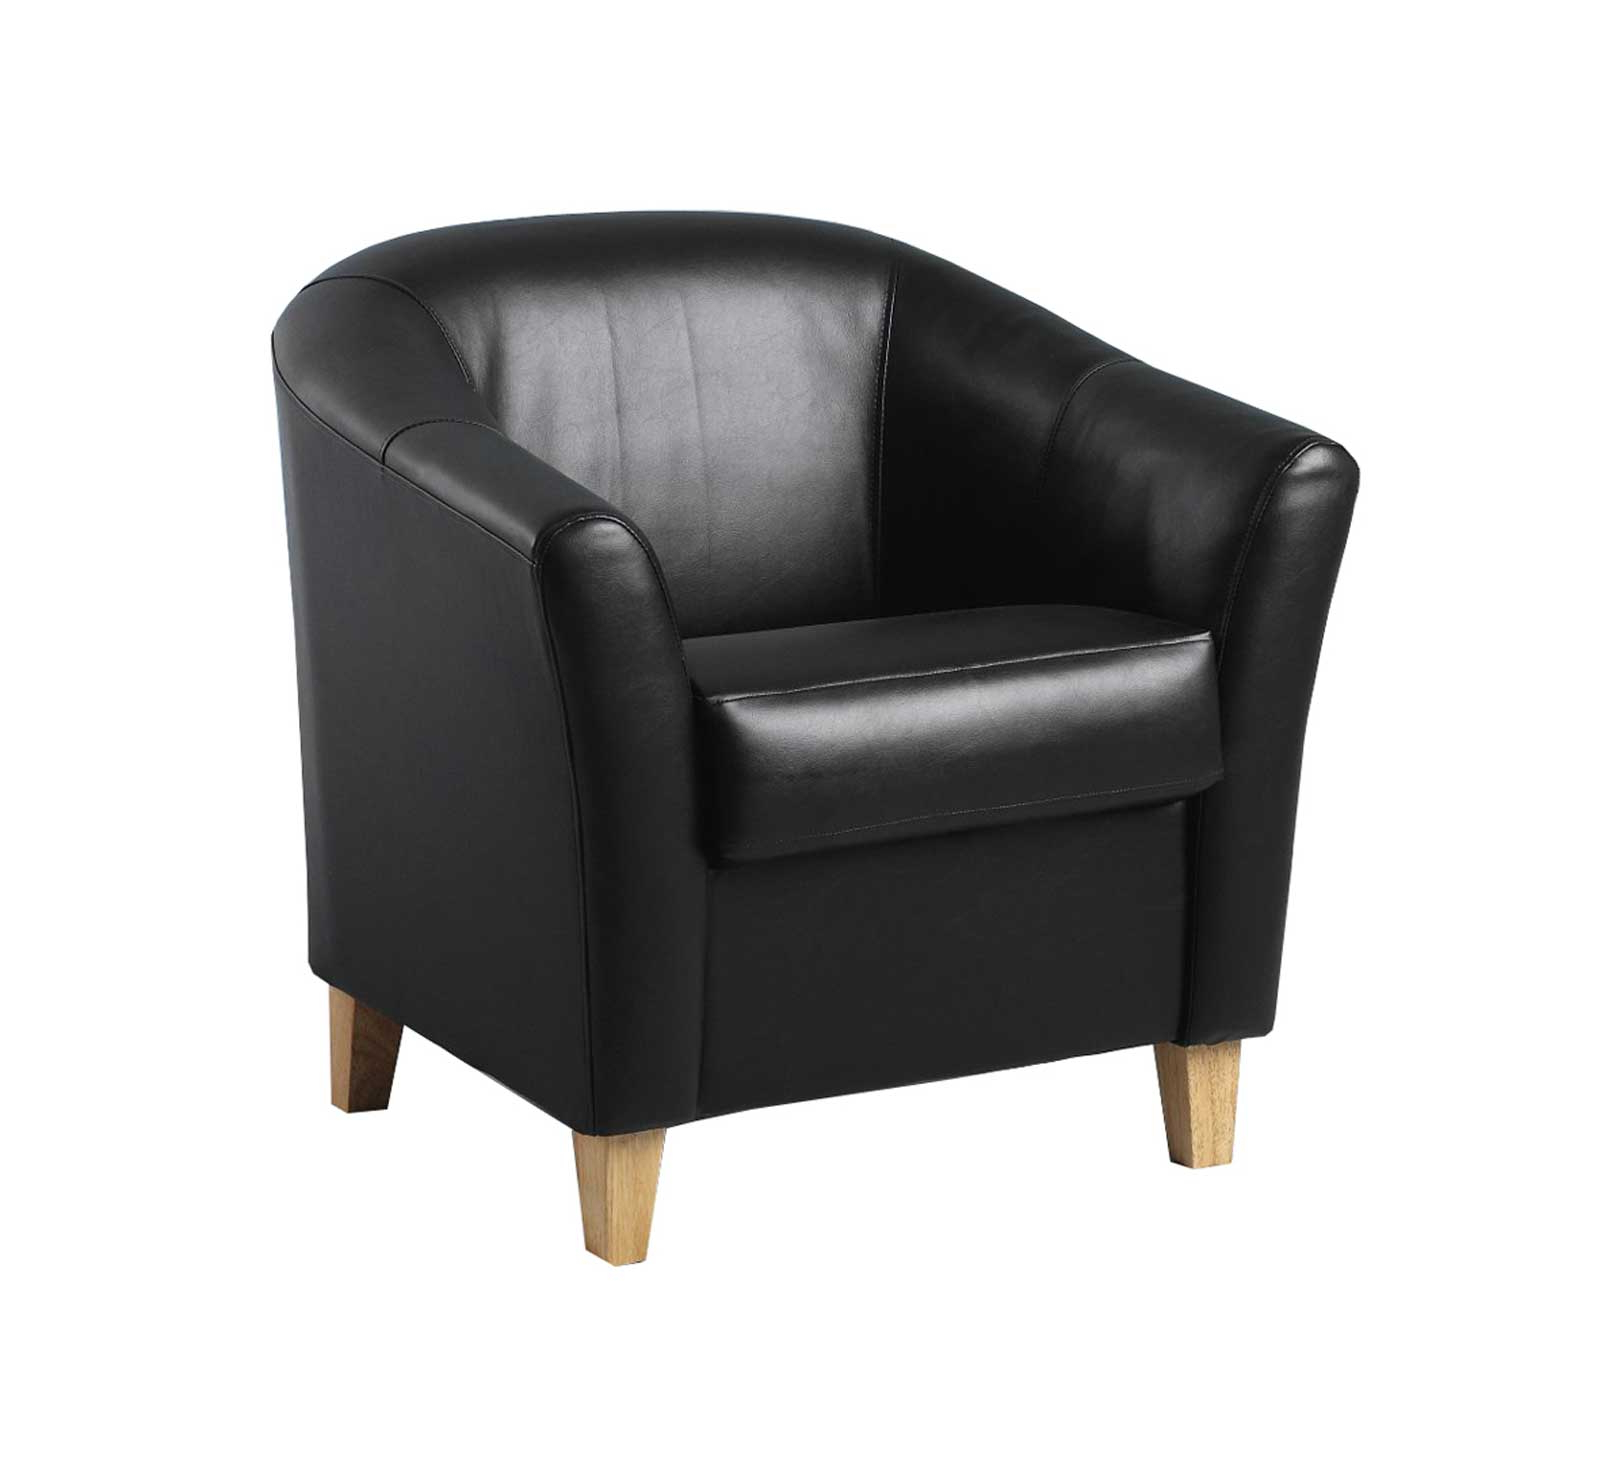 Latest Faux Leather Barrel Chairs Intended For Faux Leather Tub Chair (View 10 of 20)